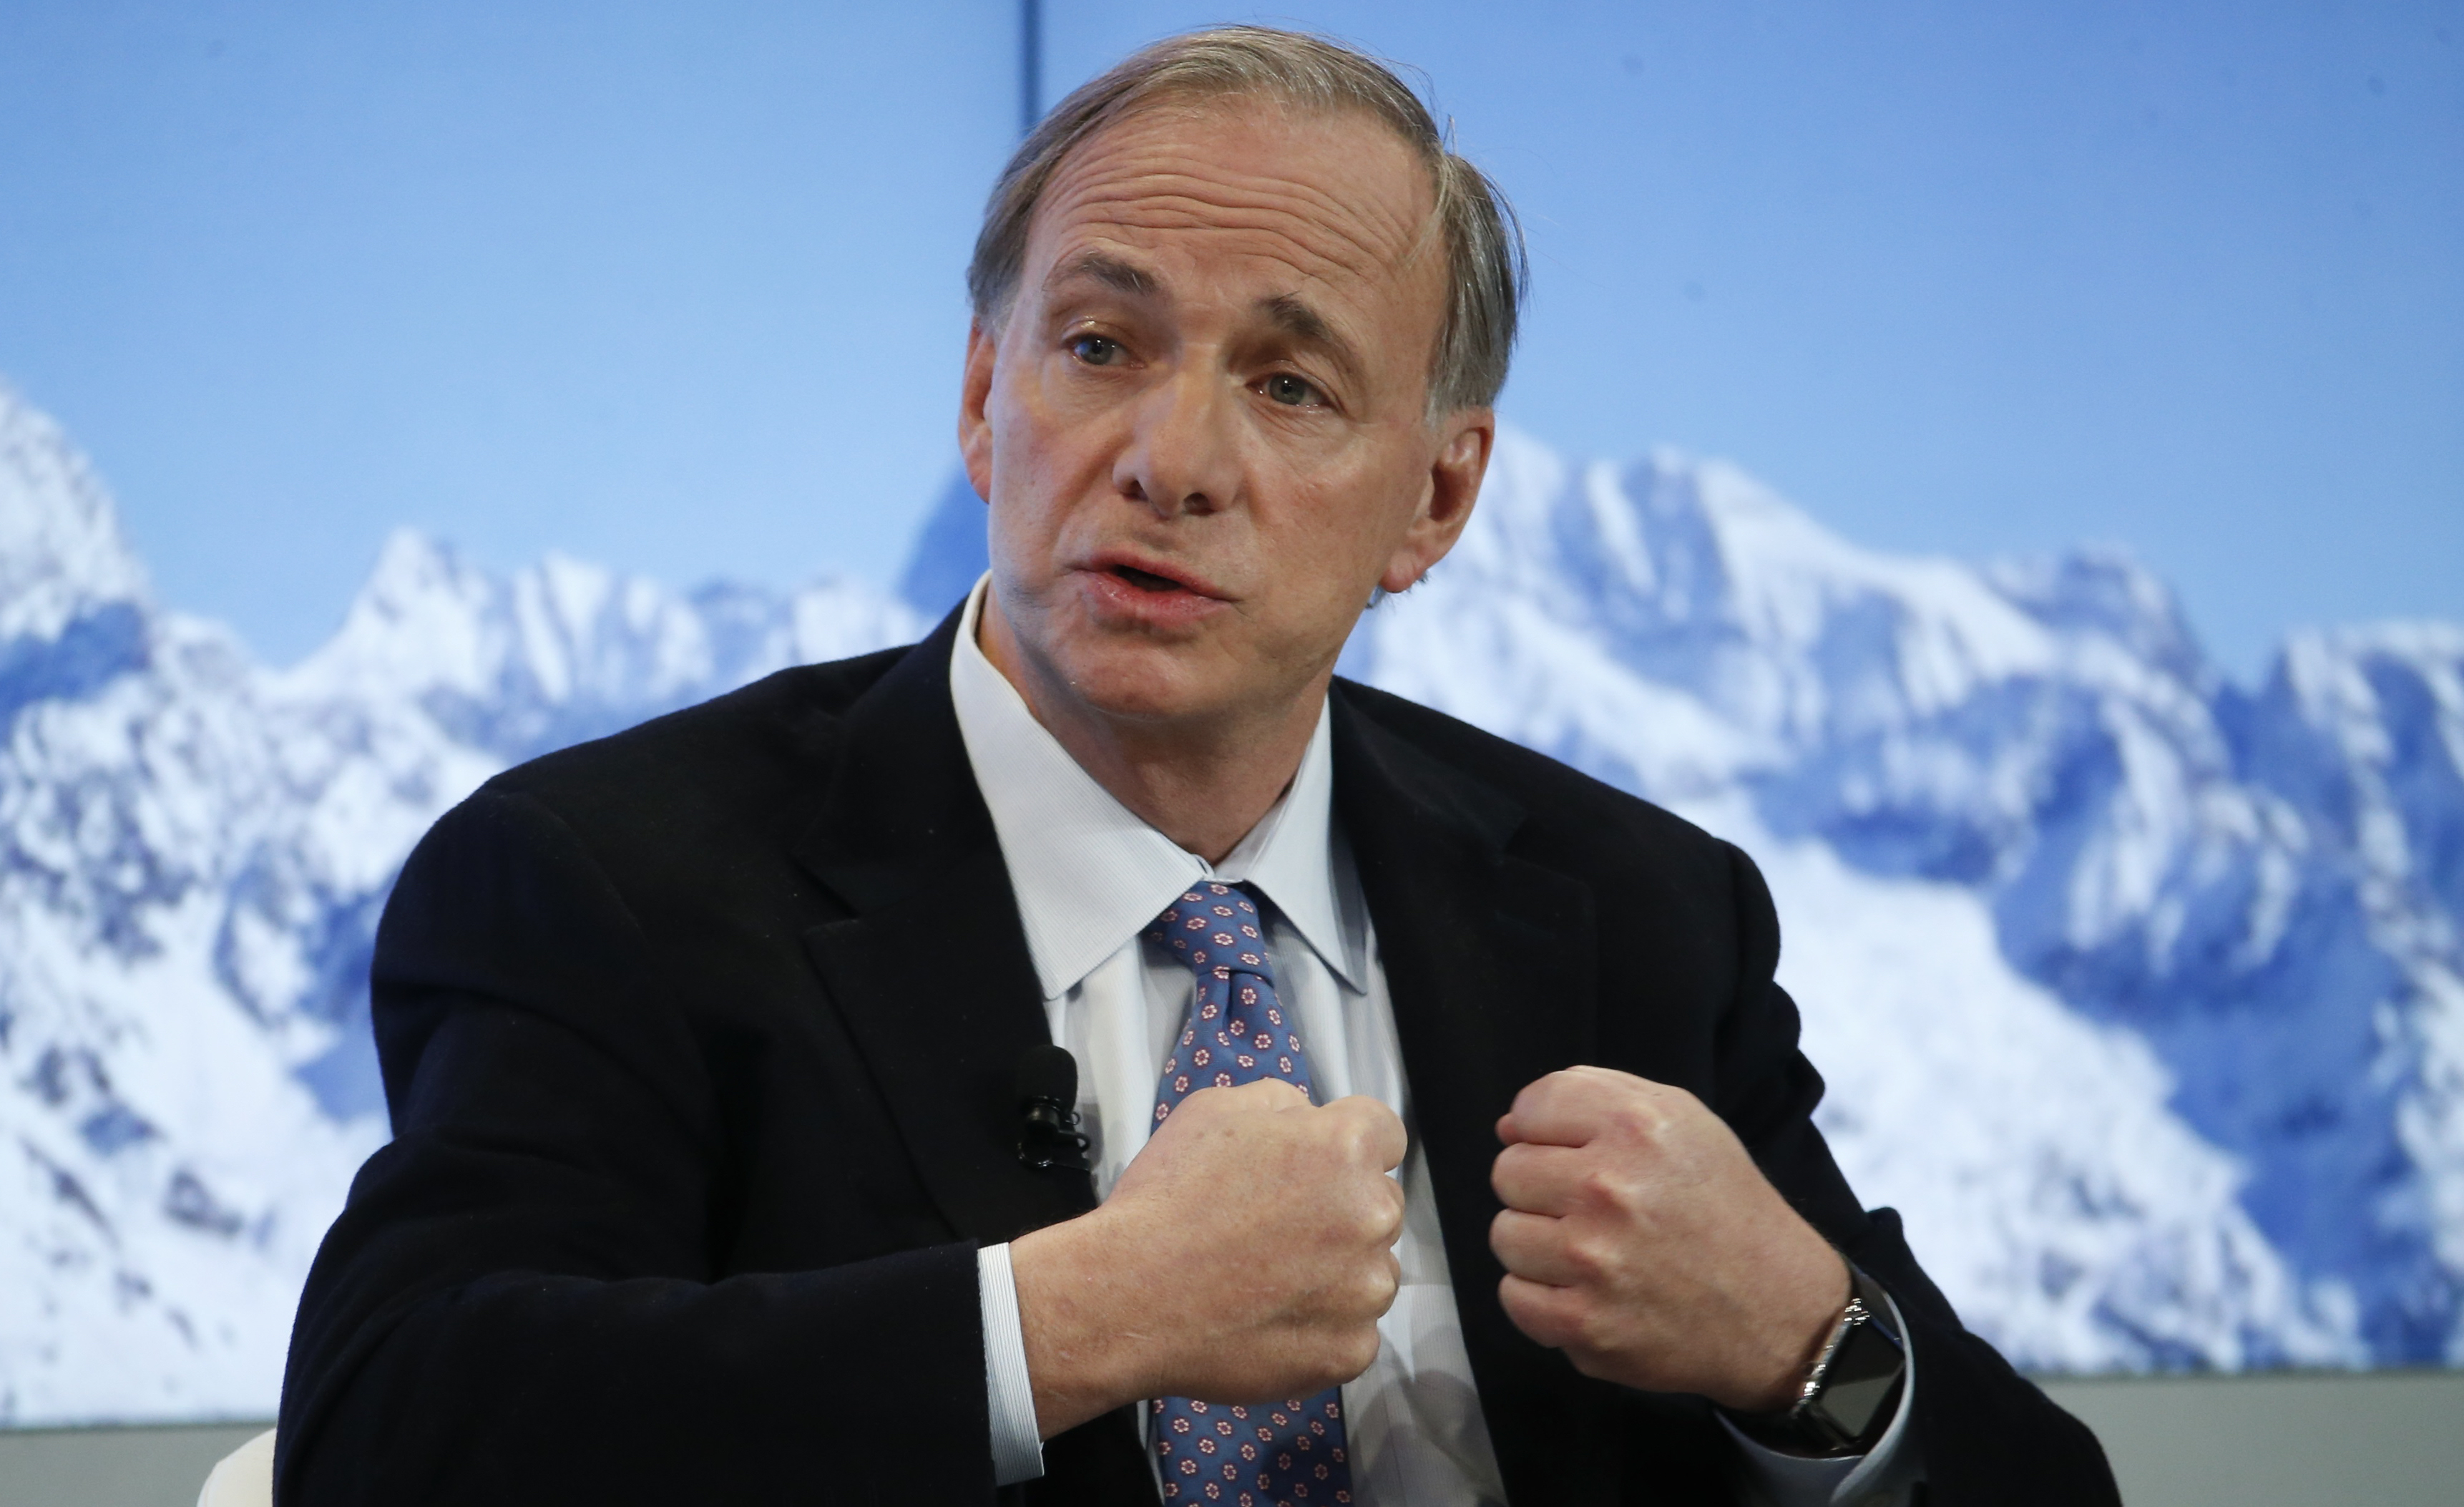 Bridgewater Associates CEO Ray Dalio explains the Dot Collector